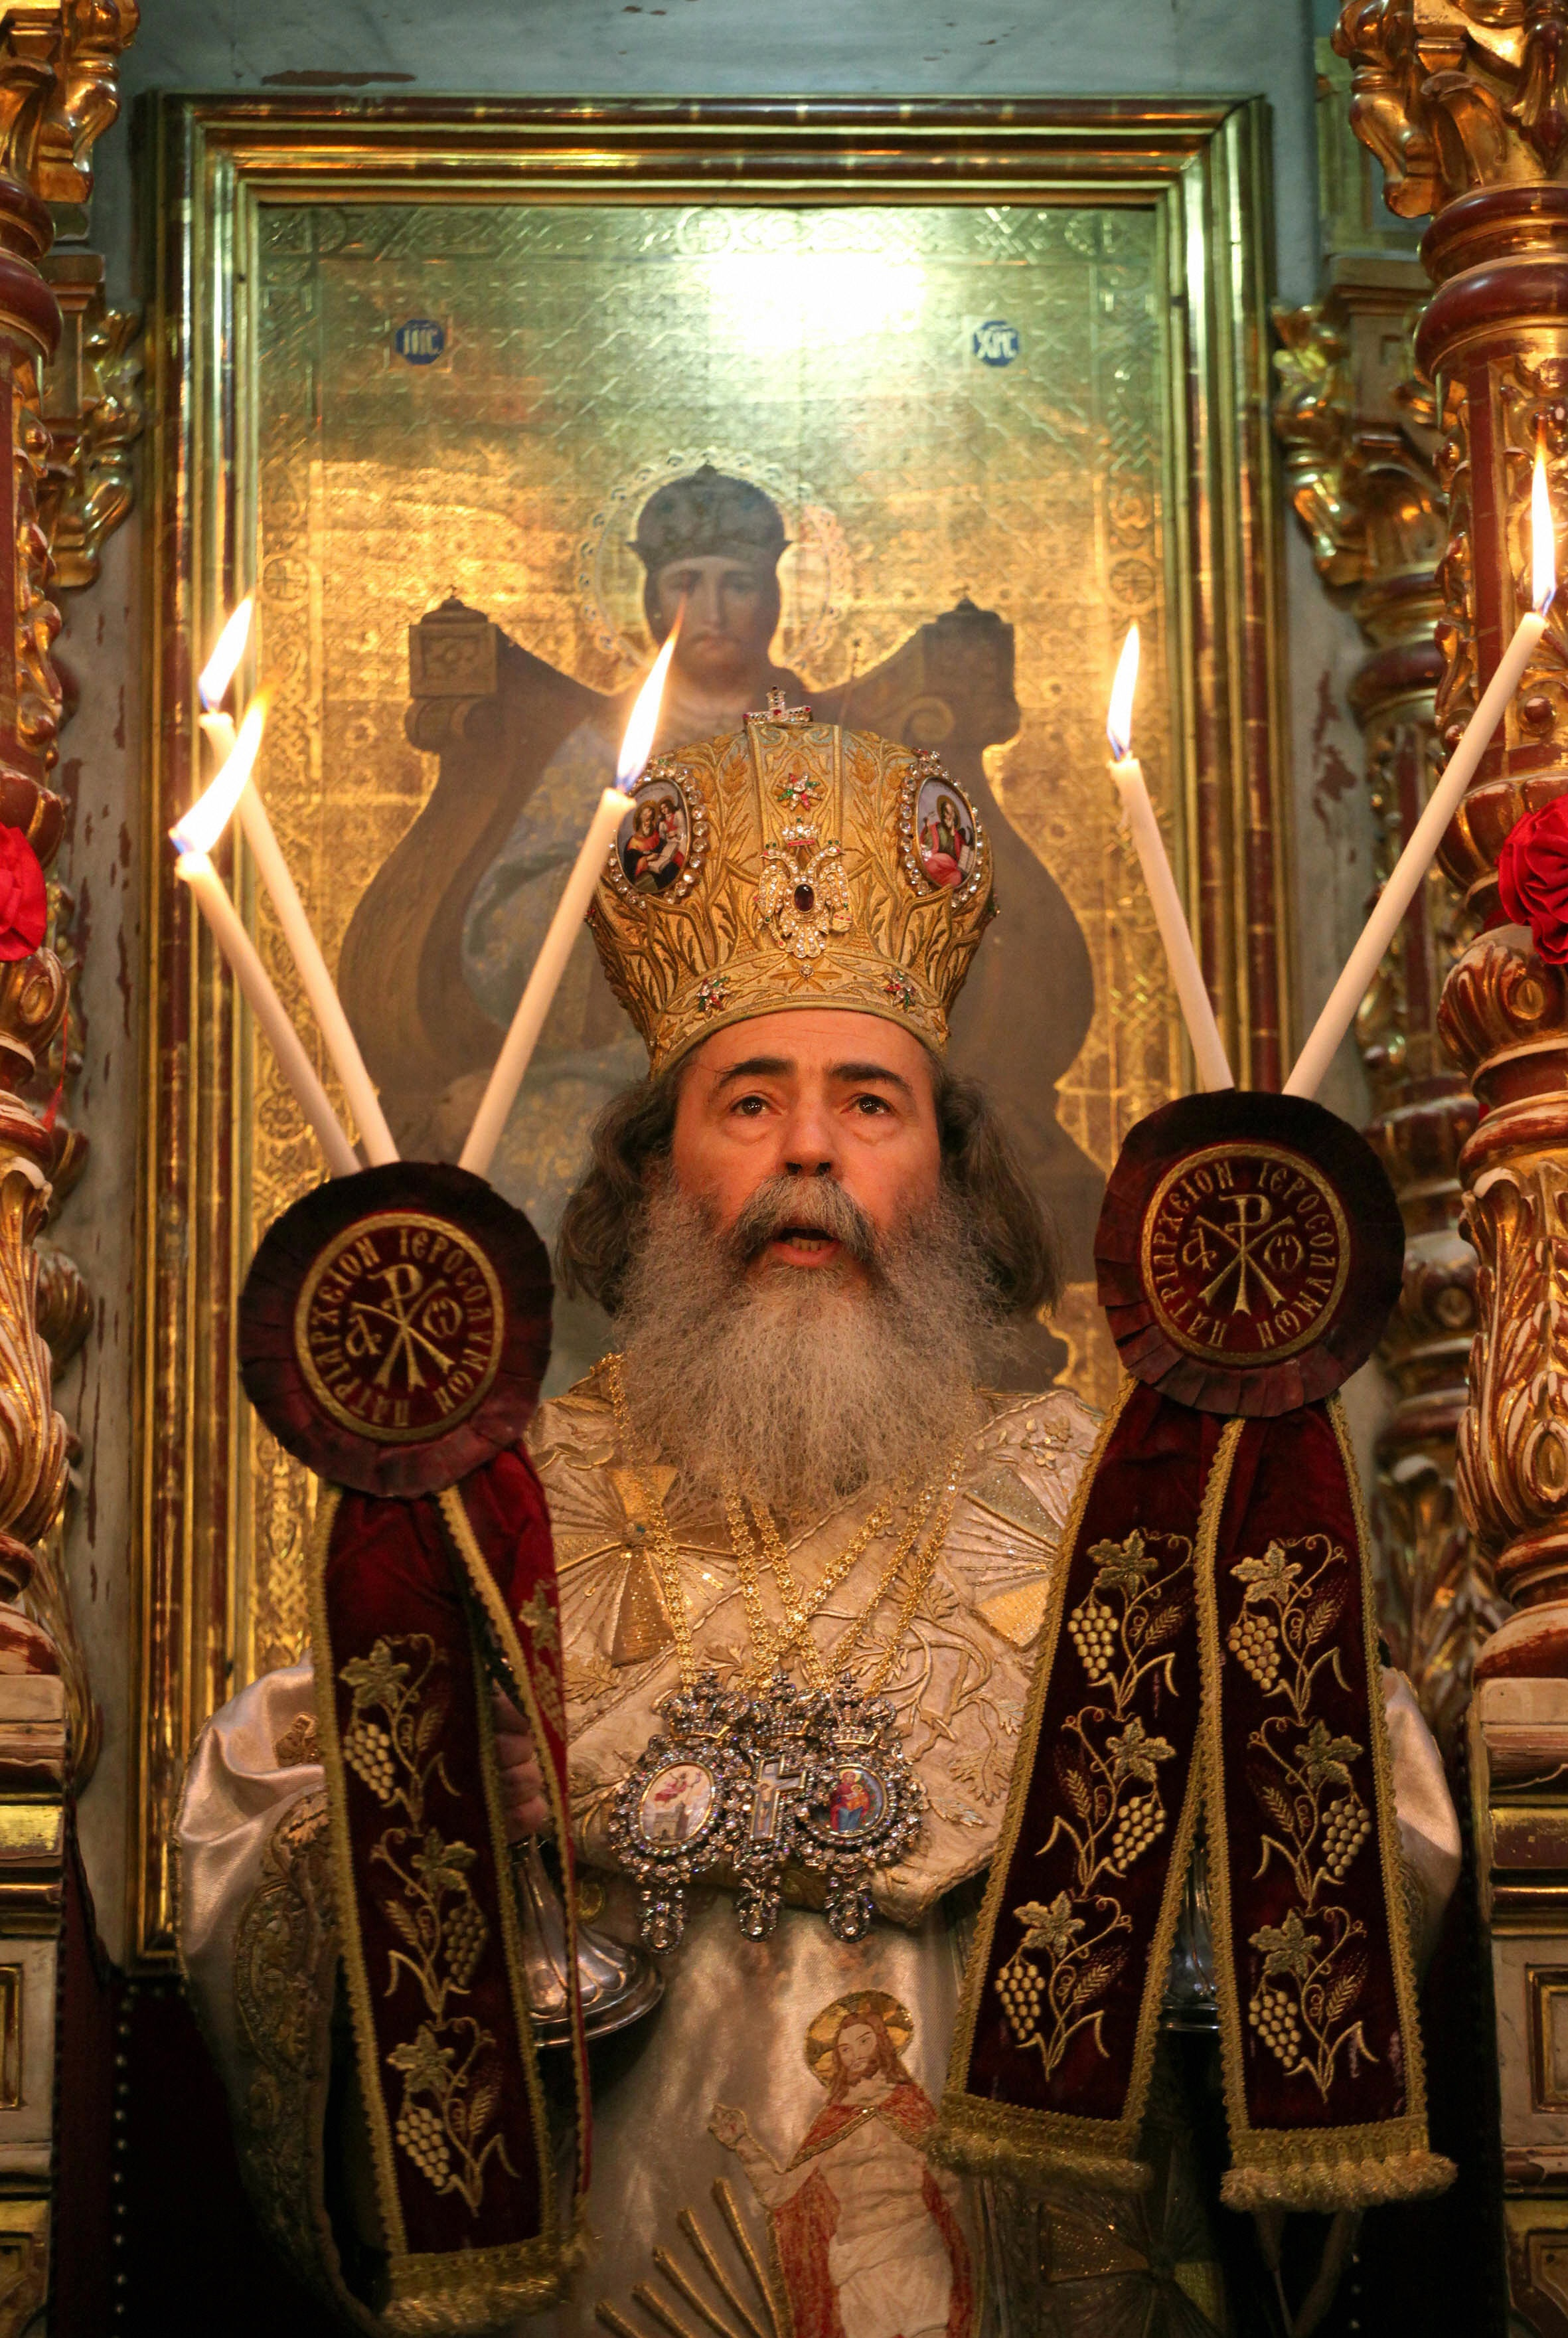 GALI TIBBON/AFP/Getty Images. Greek Orthodox Patriarch of Jerusalem Theophilos III leads the Easter Sunday mass at the Church of the Holy Sepulchre in Jerusalem's Old City on April 19, 2009.